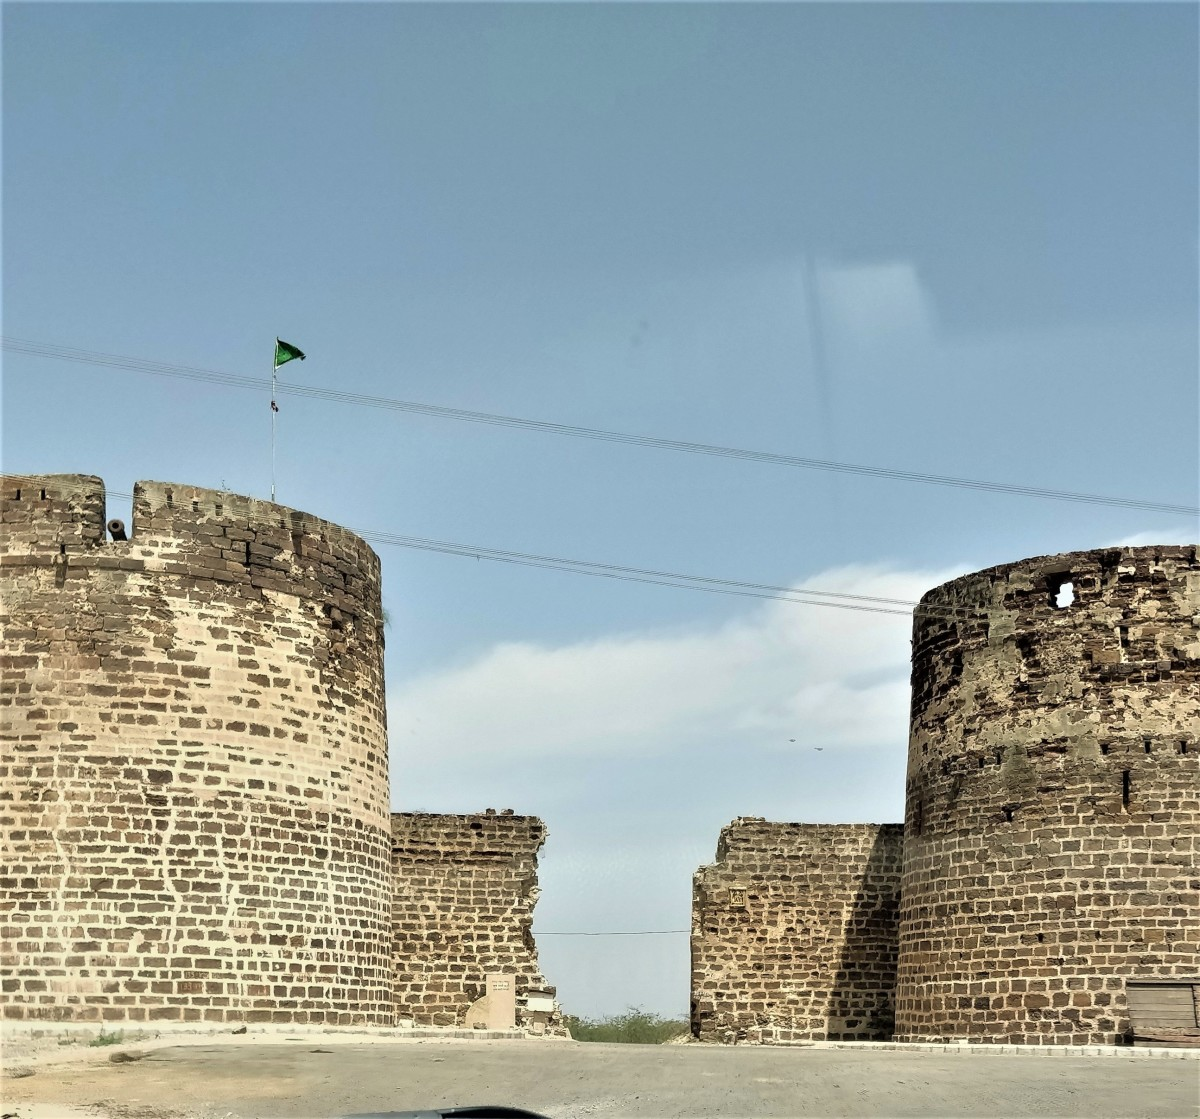 The high stone wall surrounding Lakhpat town